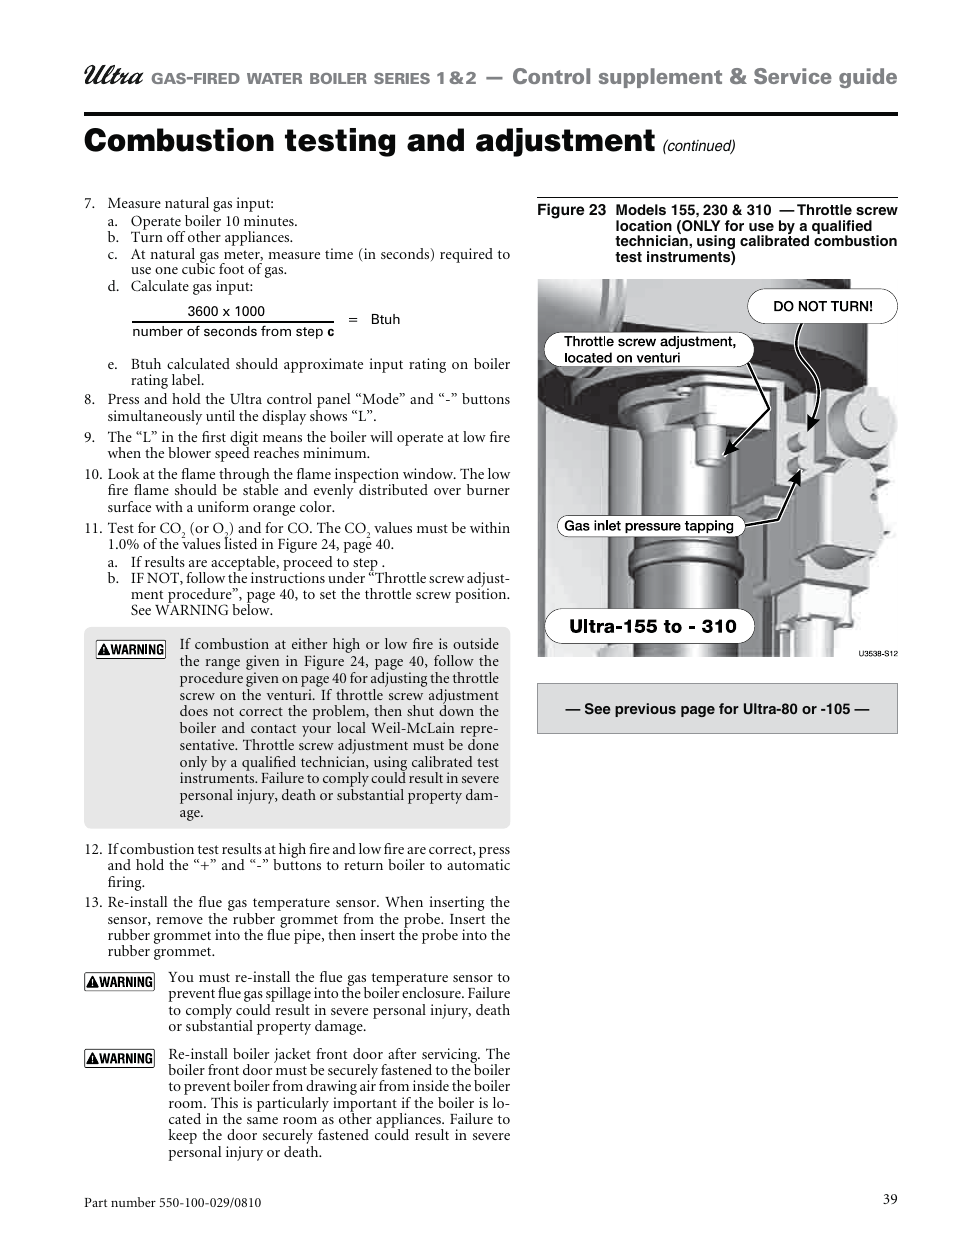 Combustion testing and adjustment, Control supplement & service ...